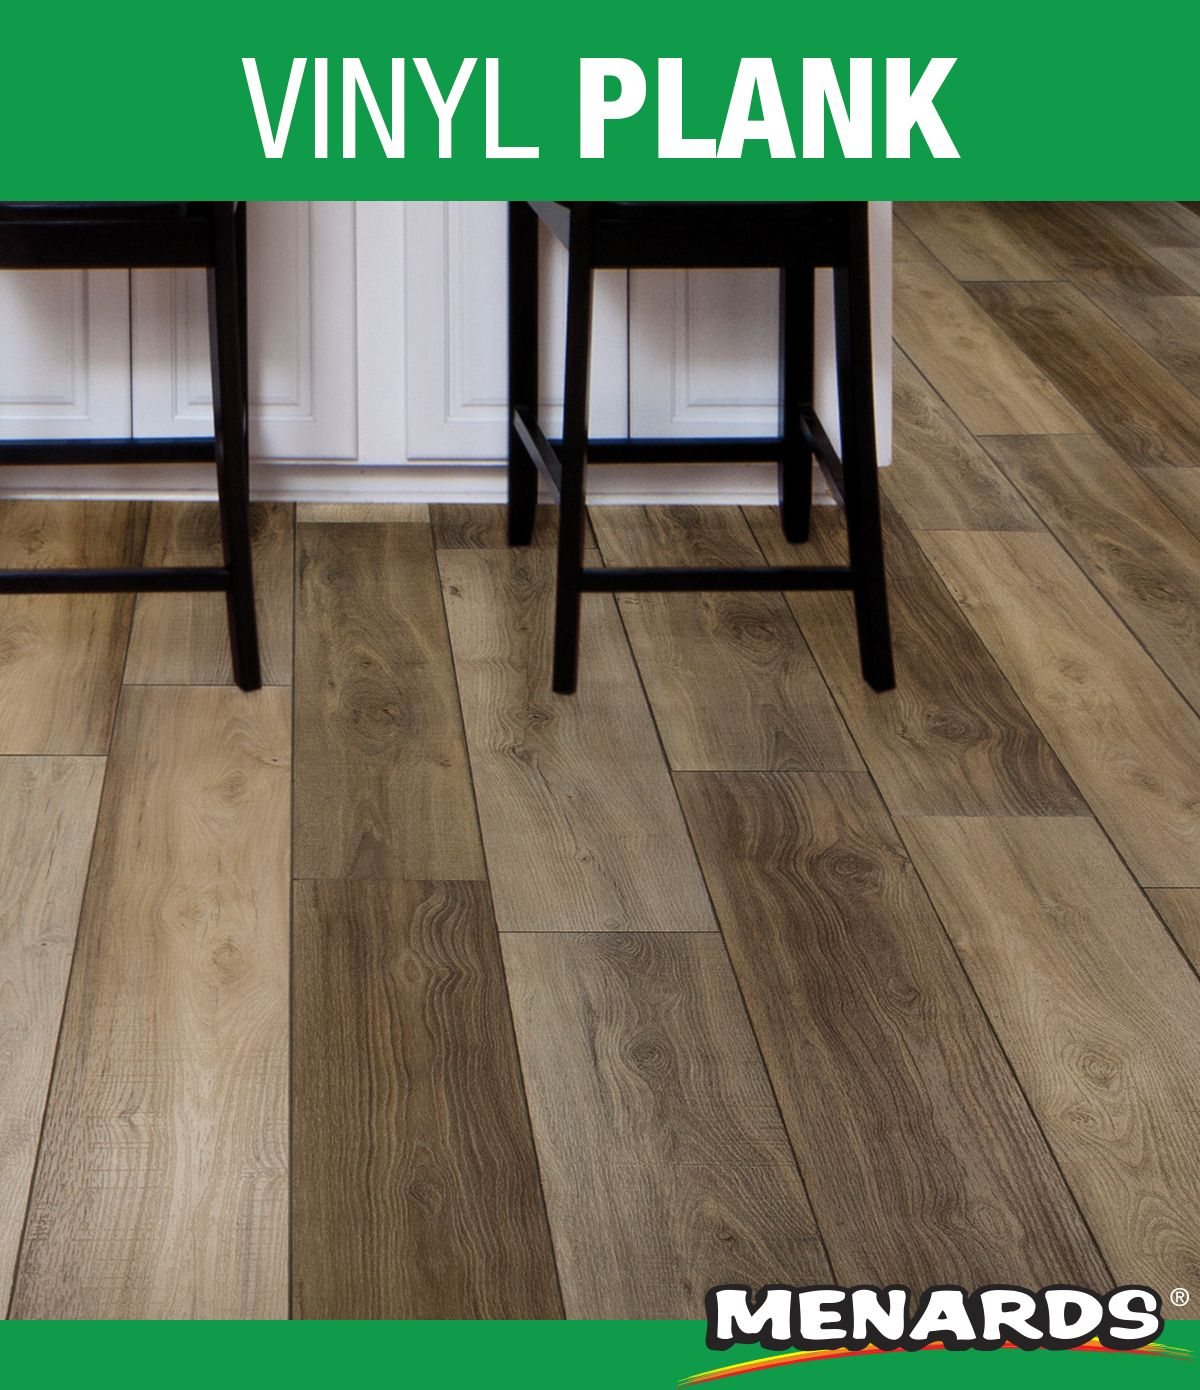 Superfast Bayrock Vinyl Planks Feature A Unique Rigid Construction That Is More Stable Than Traditional Vinyl Planks Th Blonde Flooring Vinyl Plank New Homes